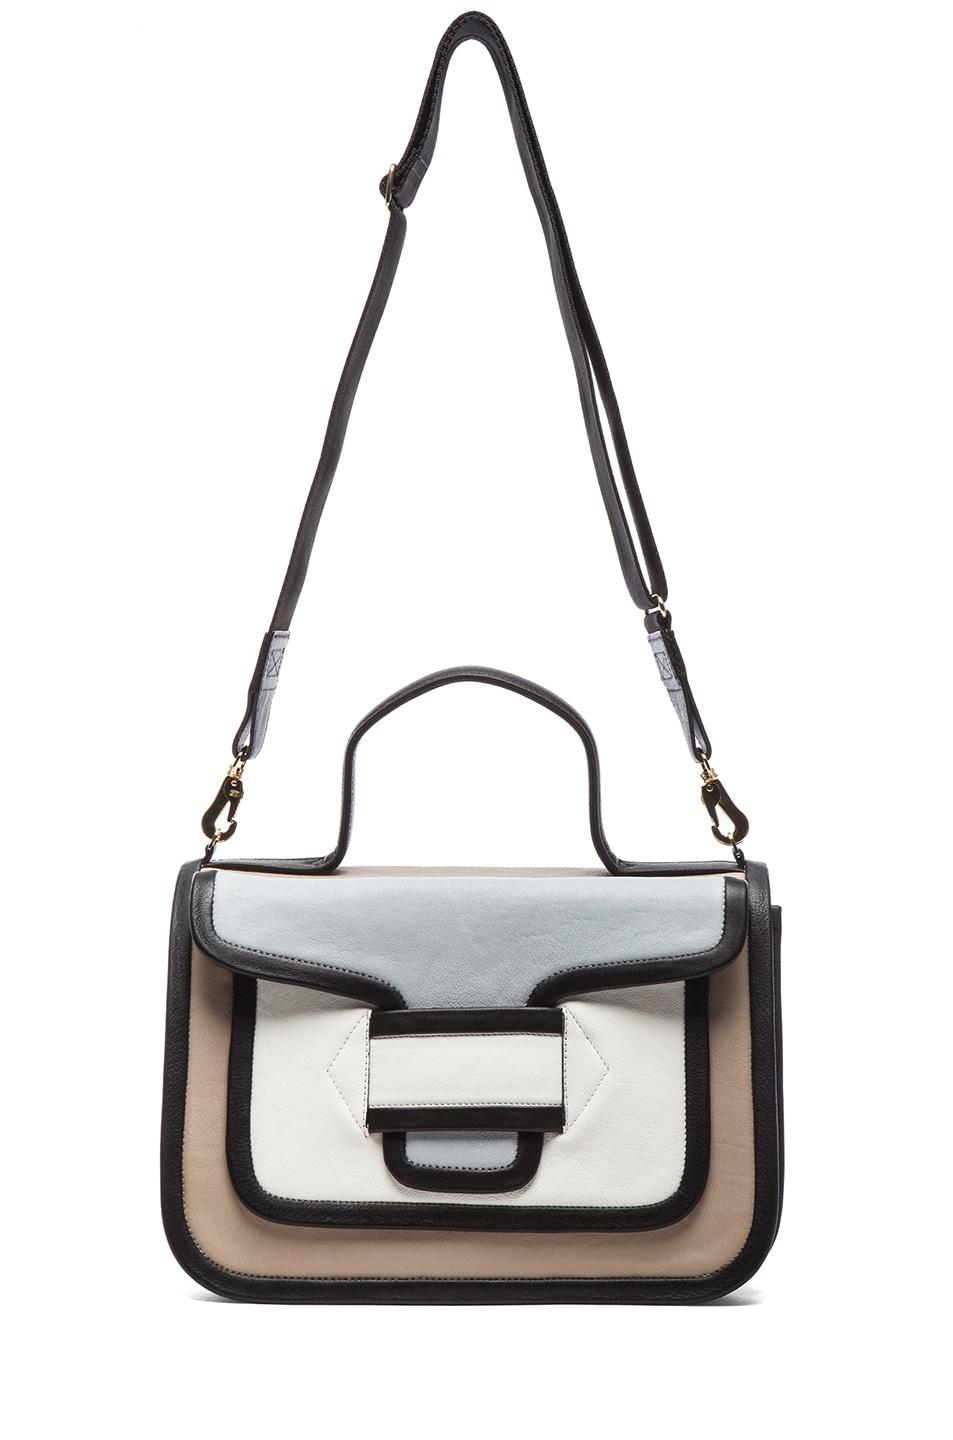 Image 5 of Pierre Hardy Large Bag in Multi Beige